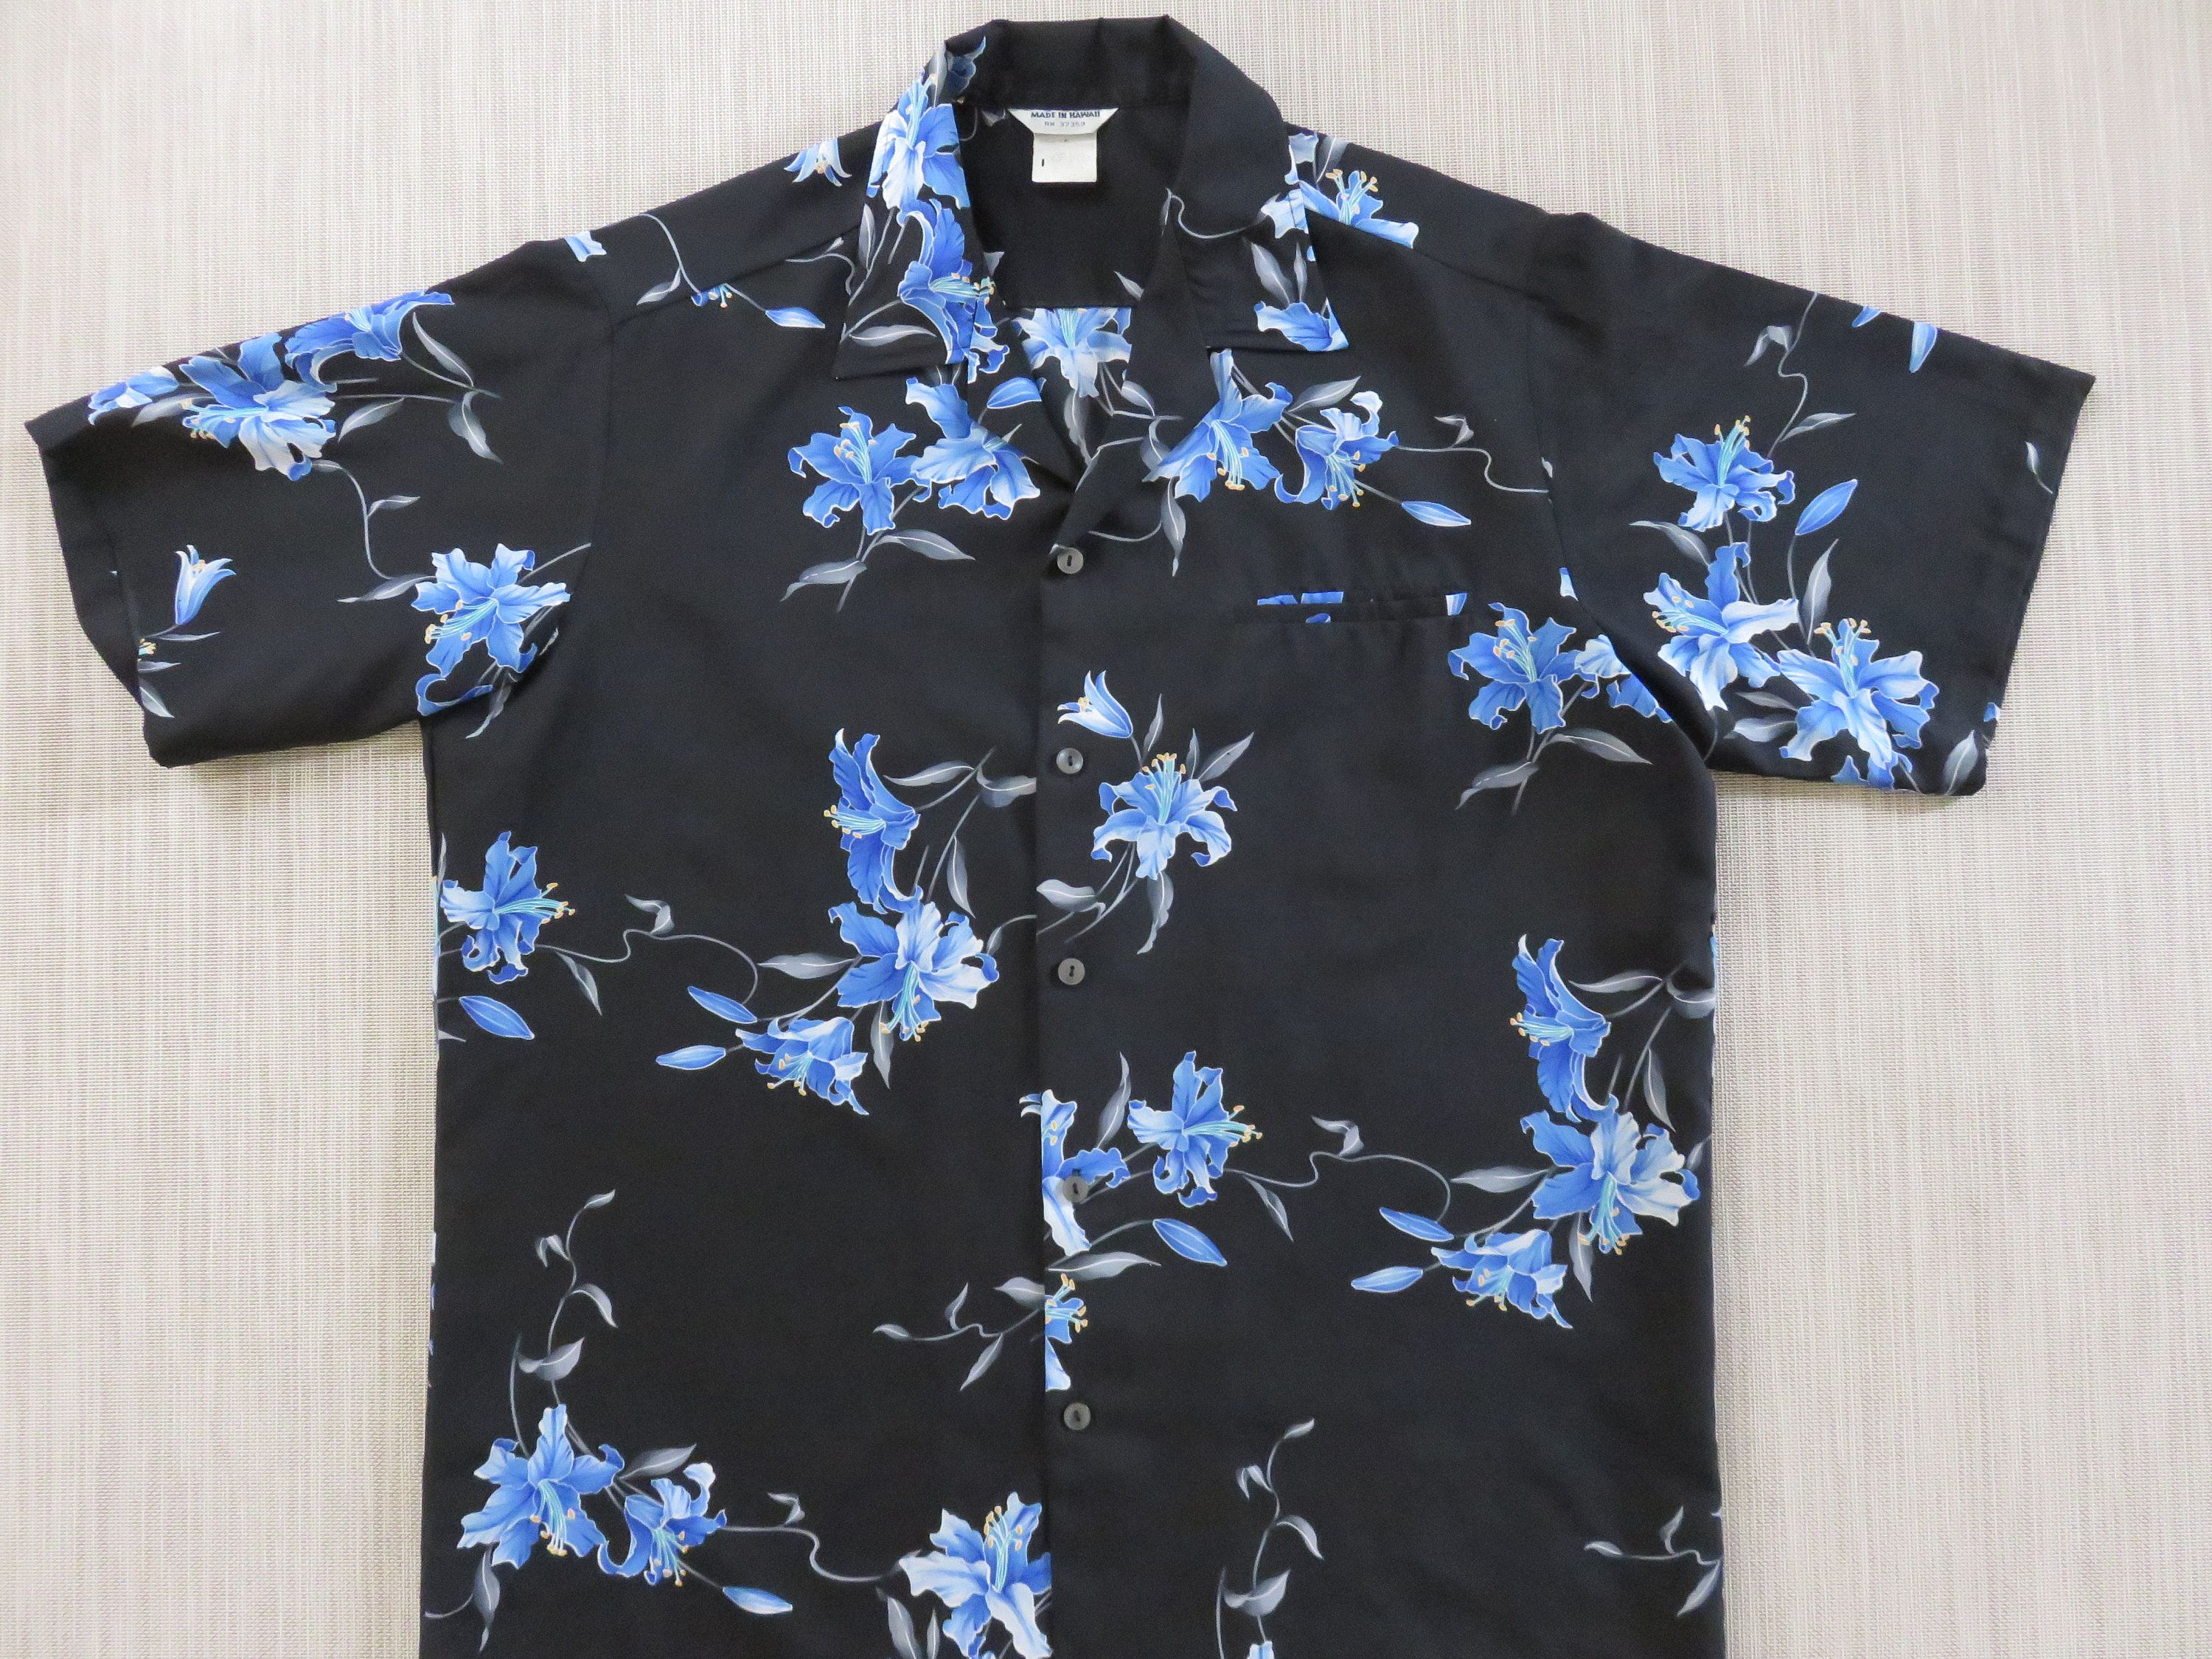 Vintage mens black Hawaiian button up shirt with purple and blue floral print